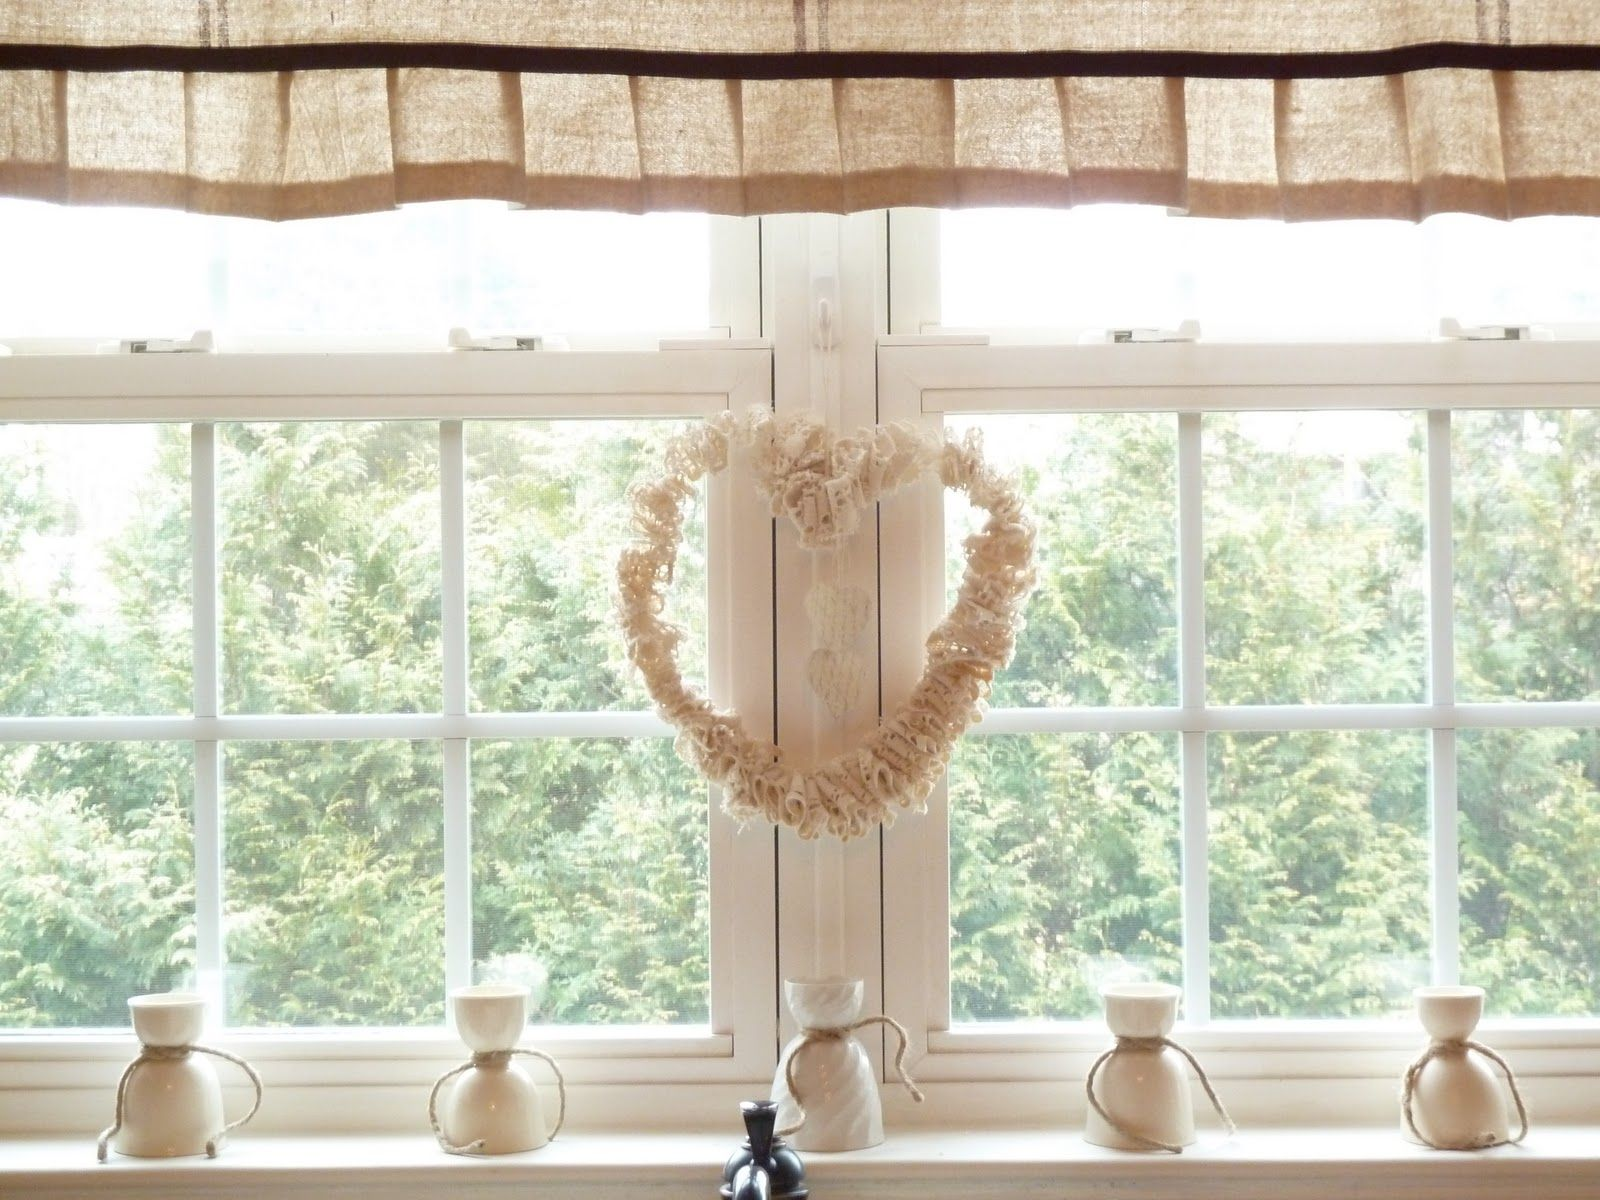 Kitchen window treatments  doily heart shaped wreath for kitchen window uc  windows